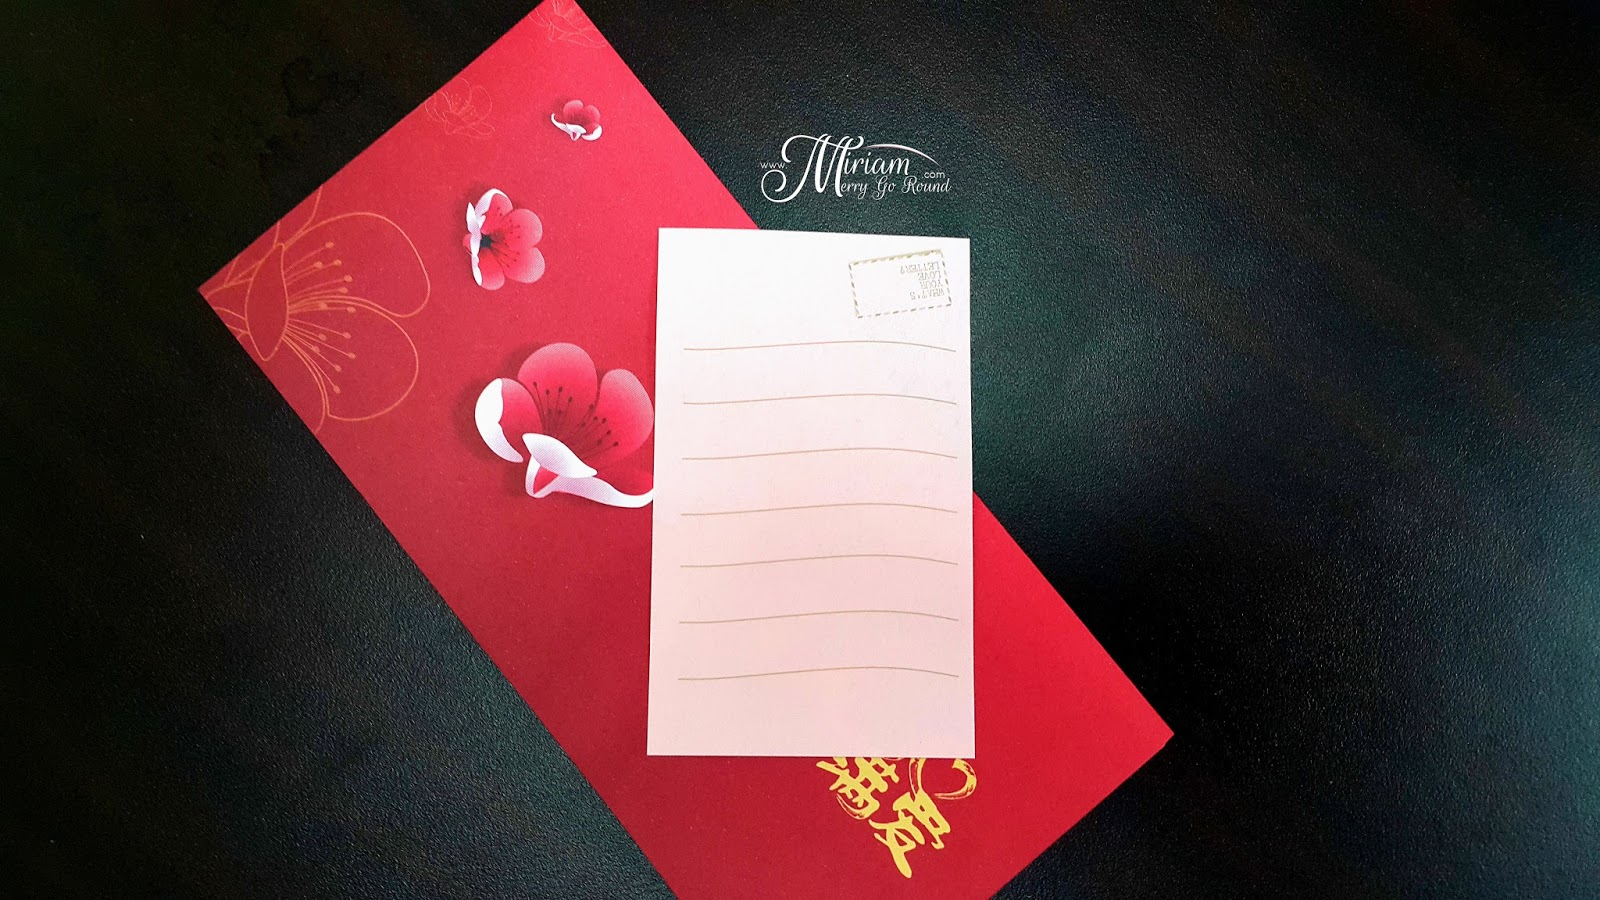 Julies biscuits cny whats your love letter miriam merrygoround different angpow packets in each 700g tin of julies love letter and in each angpow packet is a tiny note for you to write your wishes or greetings m4hsunfo